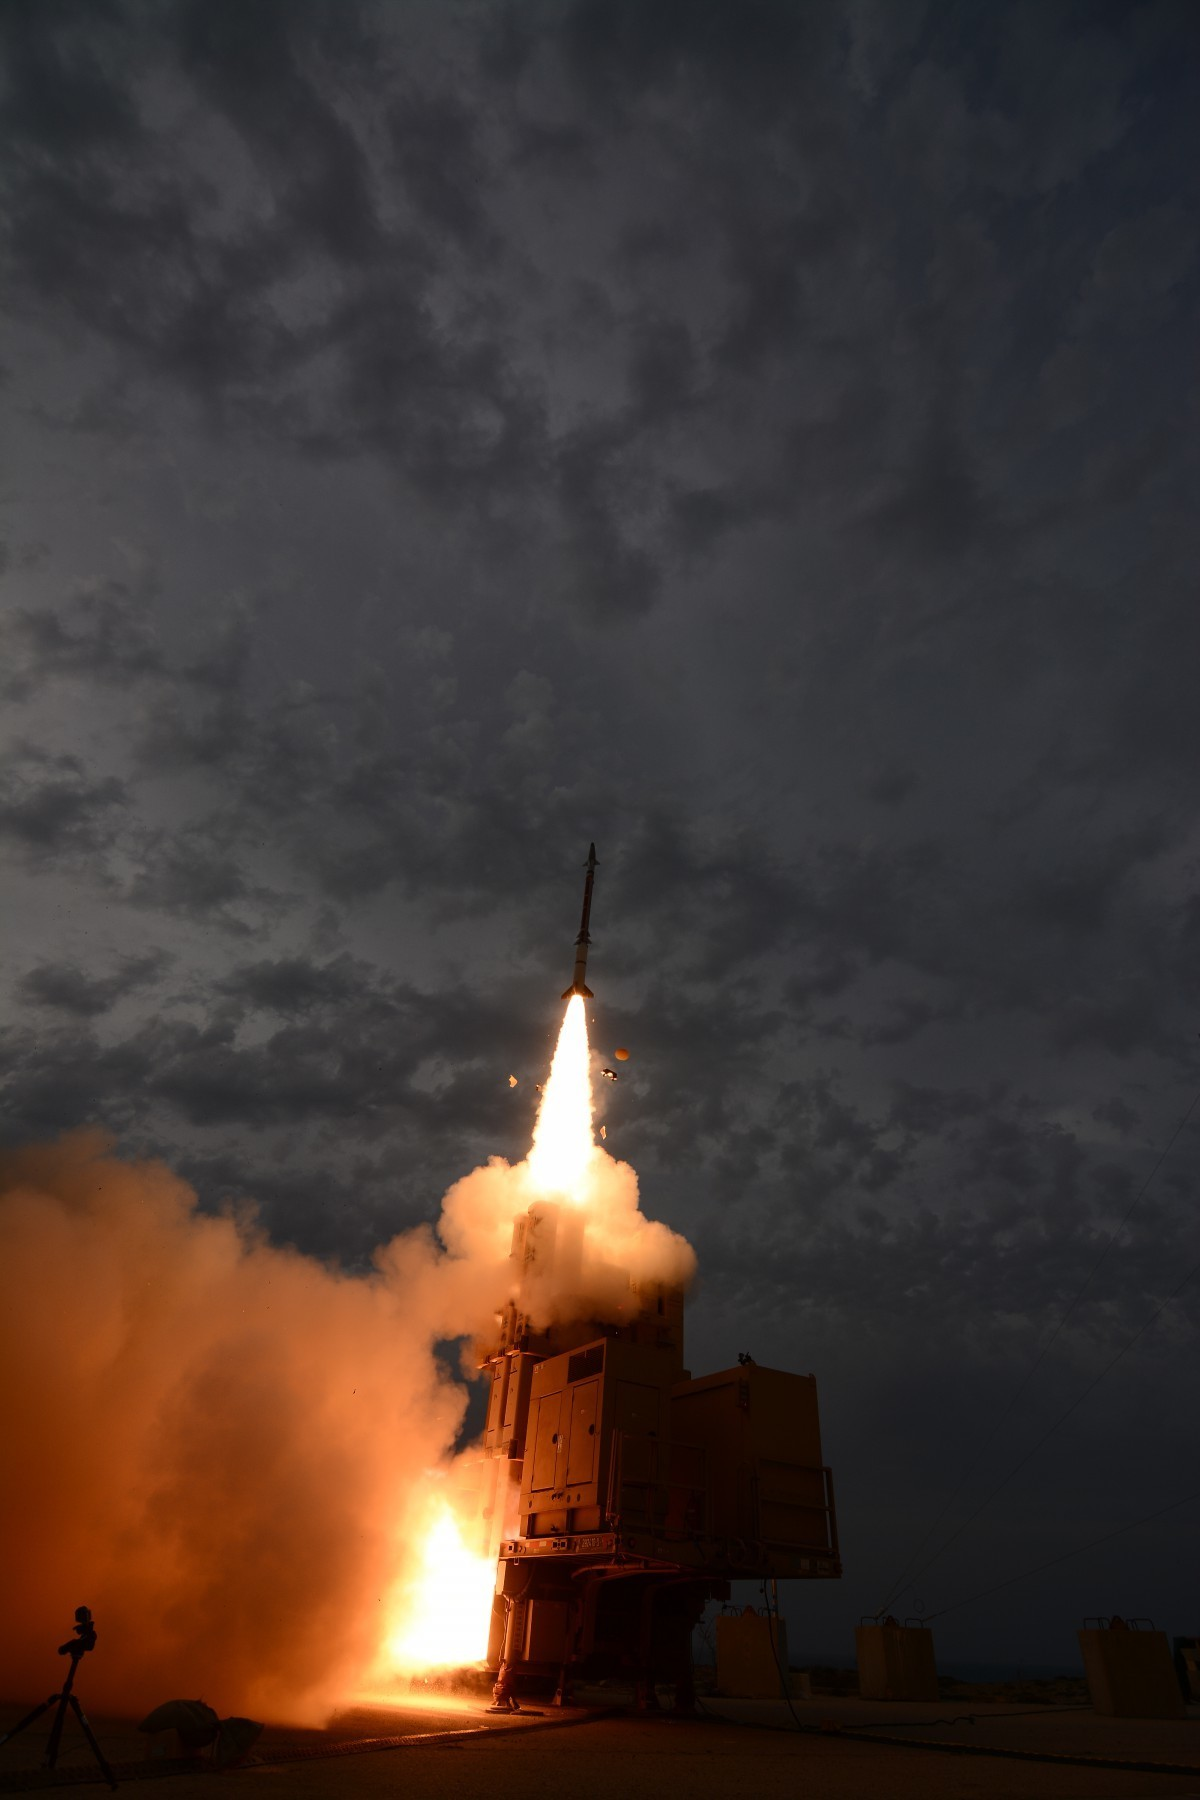 The Israel Missile Defense Organization (IMDO) of the Directorate of Defense Research and Development (DDR&D) and the U.S. Missile Defense Agency (MDA) successfully completed a test series of the David's Sling Weapons System, a missile defense system that is a central part of Israel's multi-layer anti-missile array. This test series, designated David's Sling Test-5 (DST-5) was the fifth series of tests of the David's Sling Weapon System. This test series was conducted at Yanat Sea Range, operated out of Palmachim Air Base, Israel.